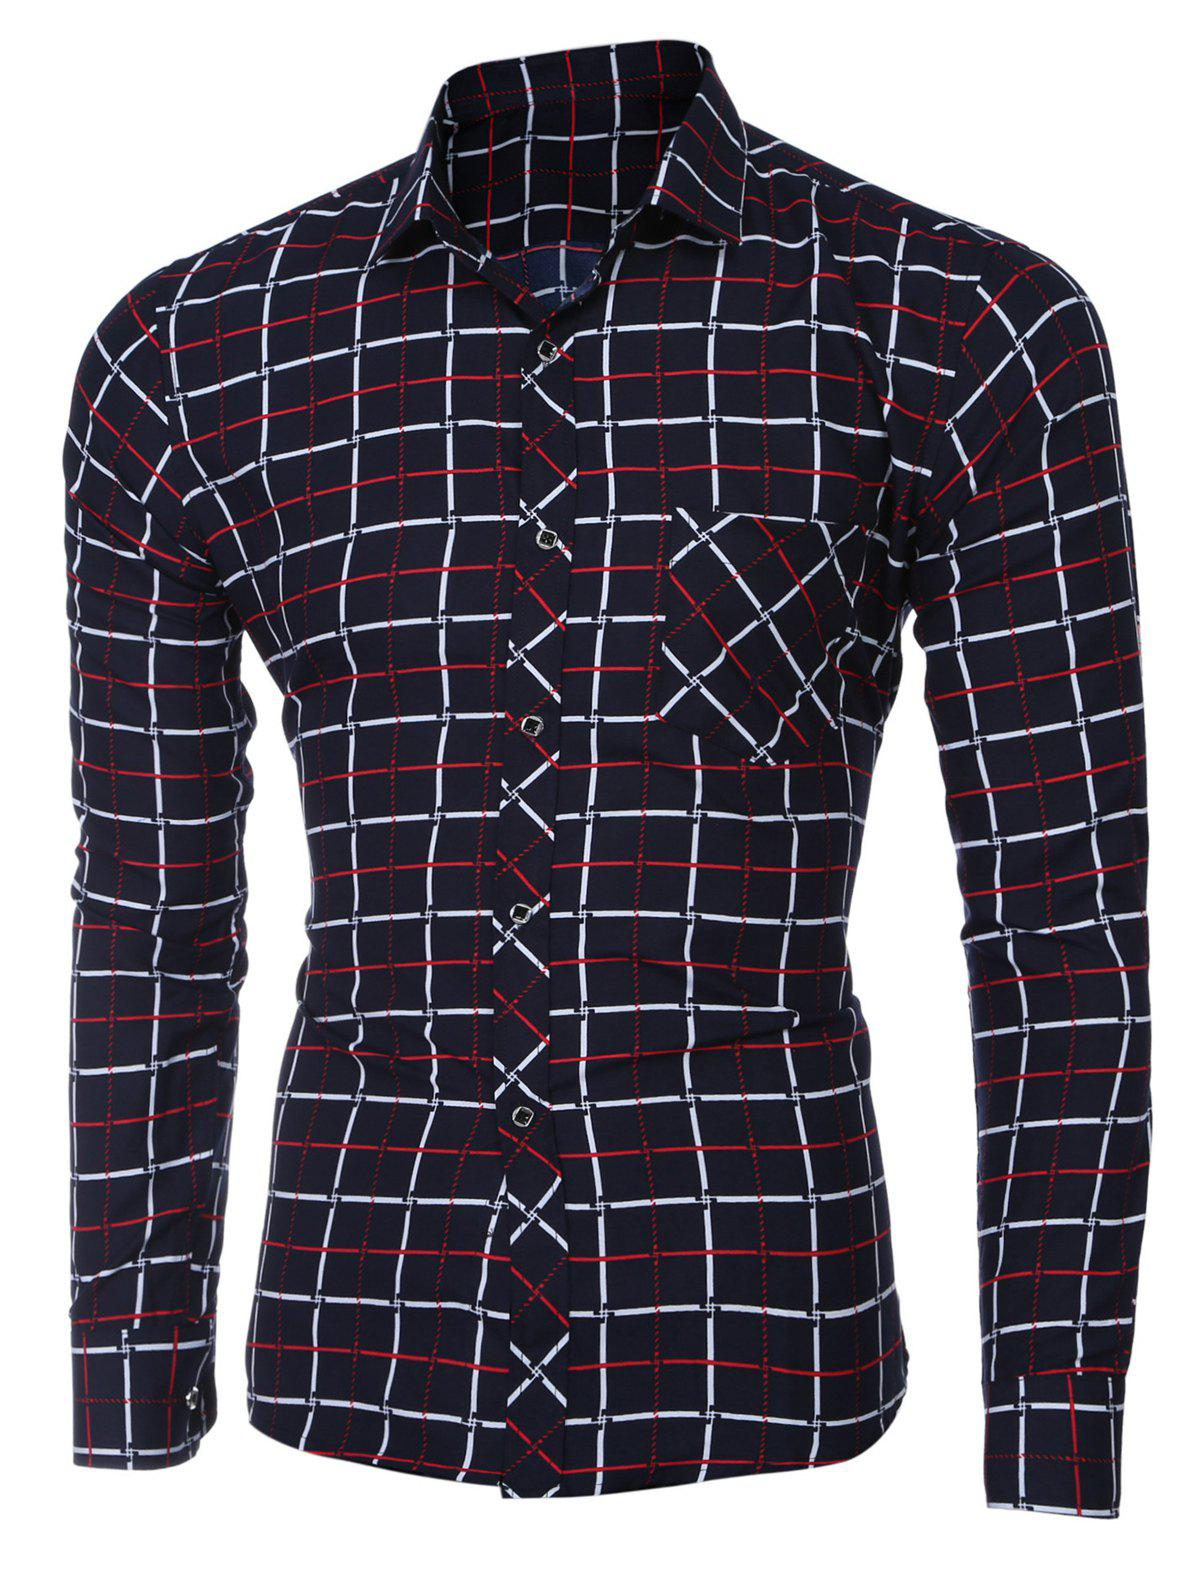 Turn-down Collar Checked Printing Long Sleeves Shirt For Men